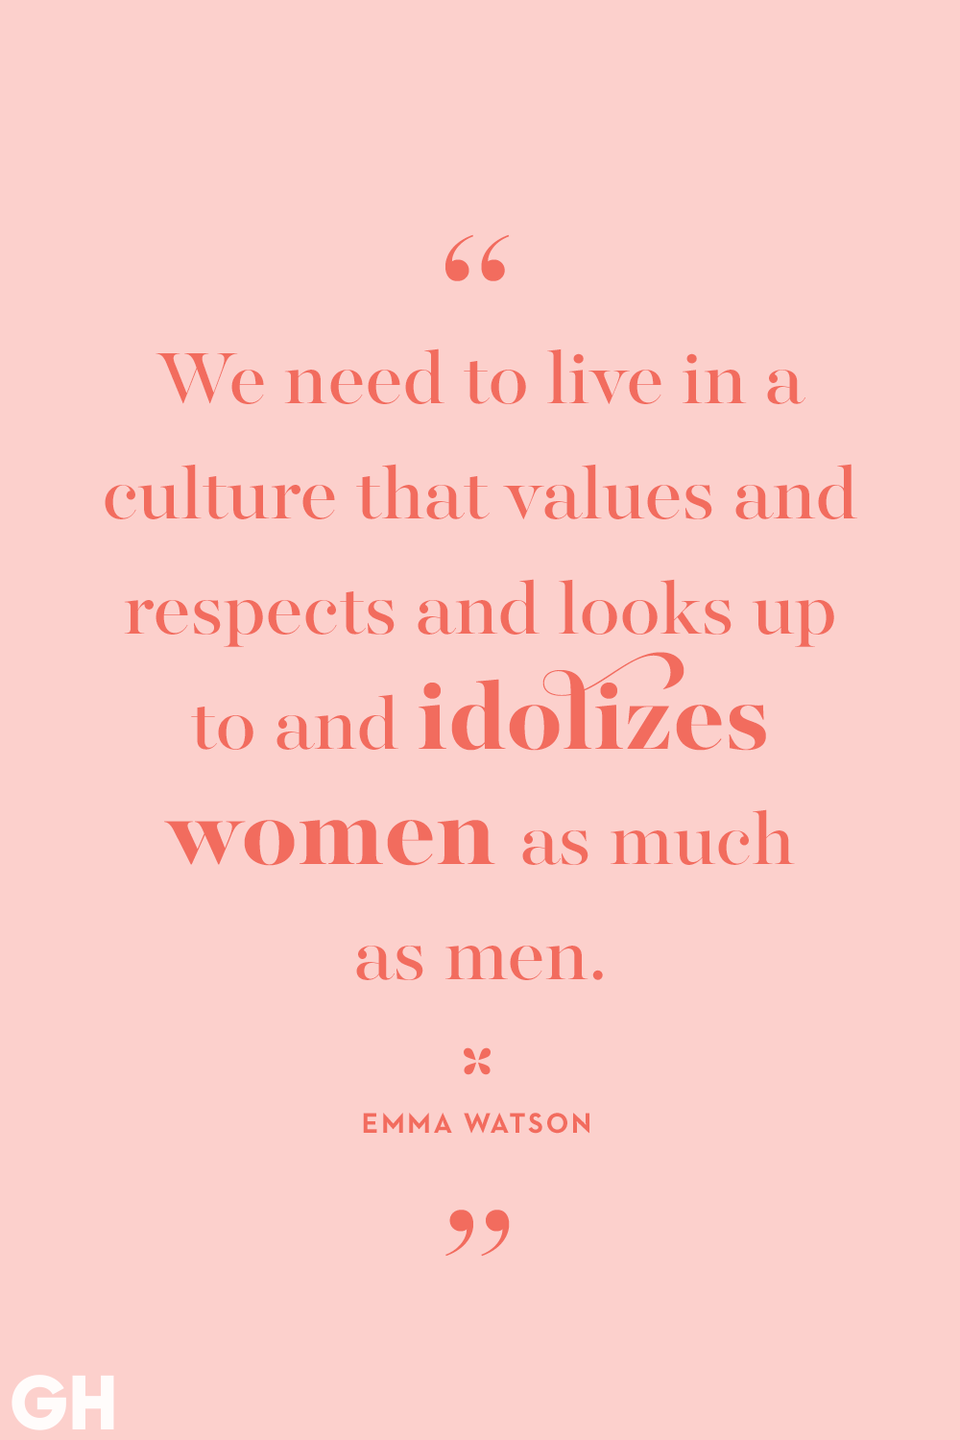 <p>We need to live in a culture that values and respects and looks up to and idolizes women as much as men.</p>